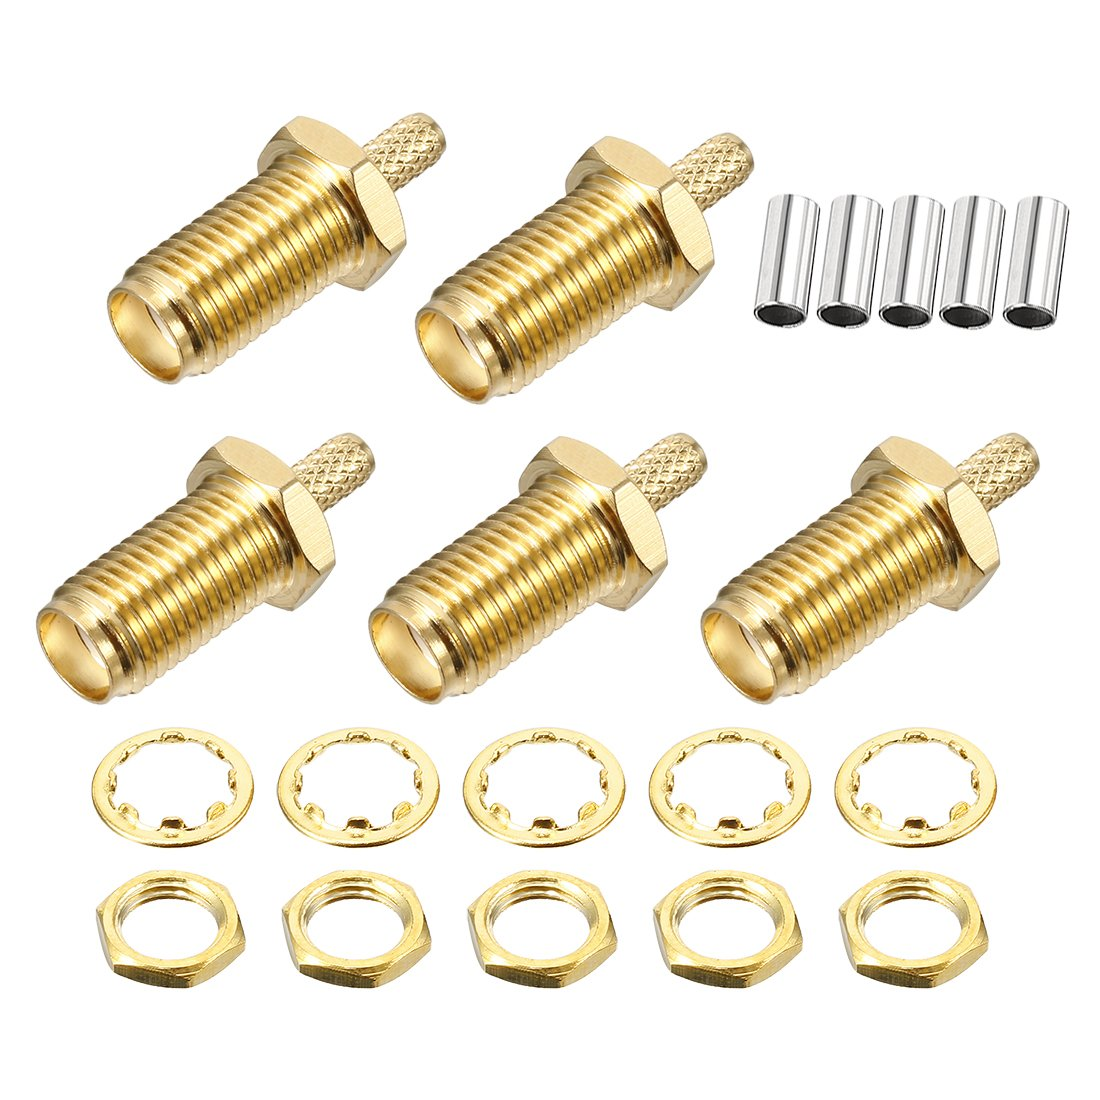 uxcell RP SMA Female to TNC Male Brass with 19.6 RG316 Cable RF Coaxial Coax Adapter 1pcs